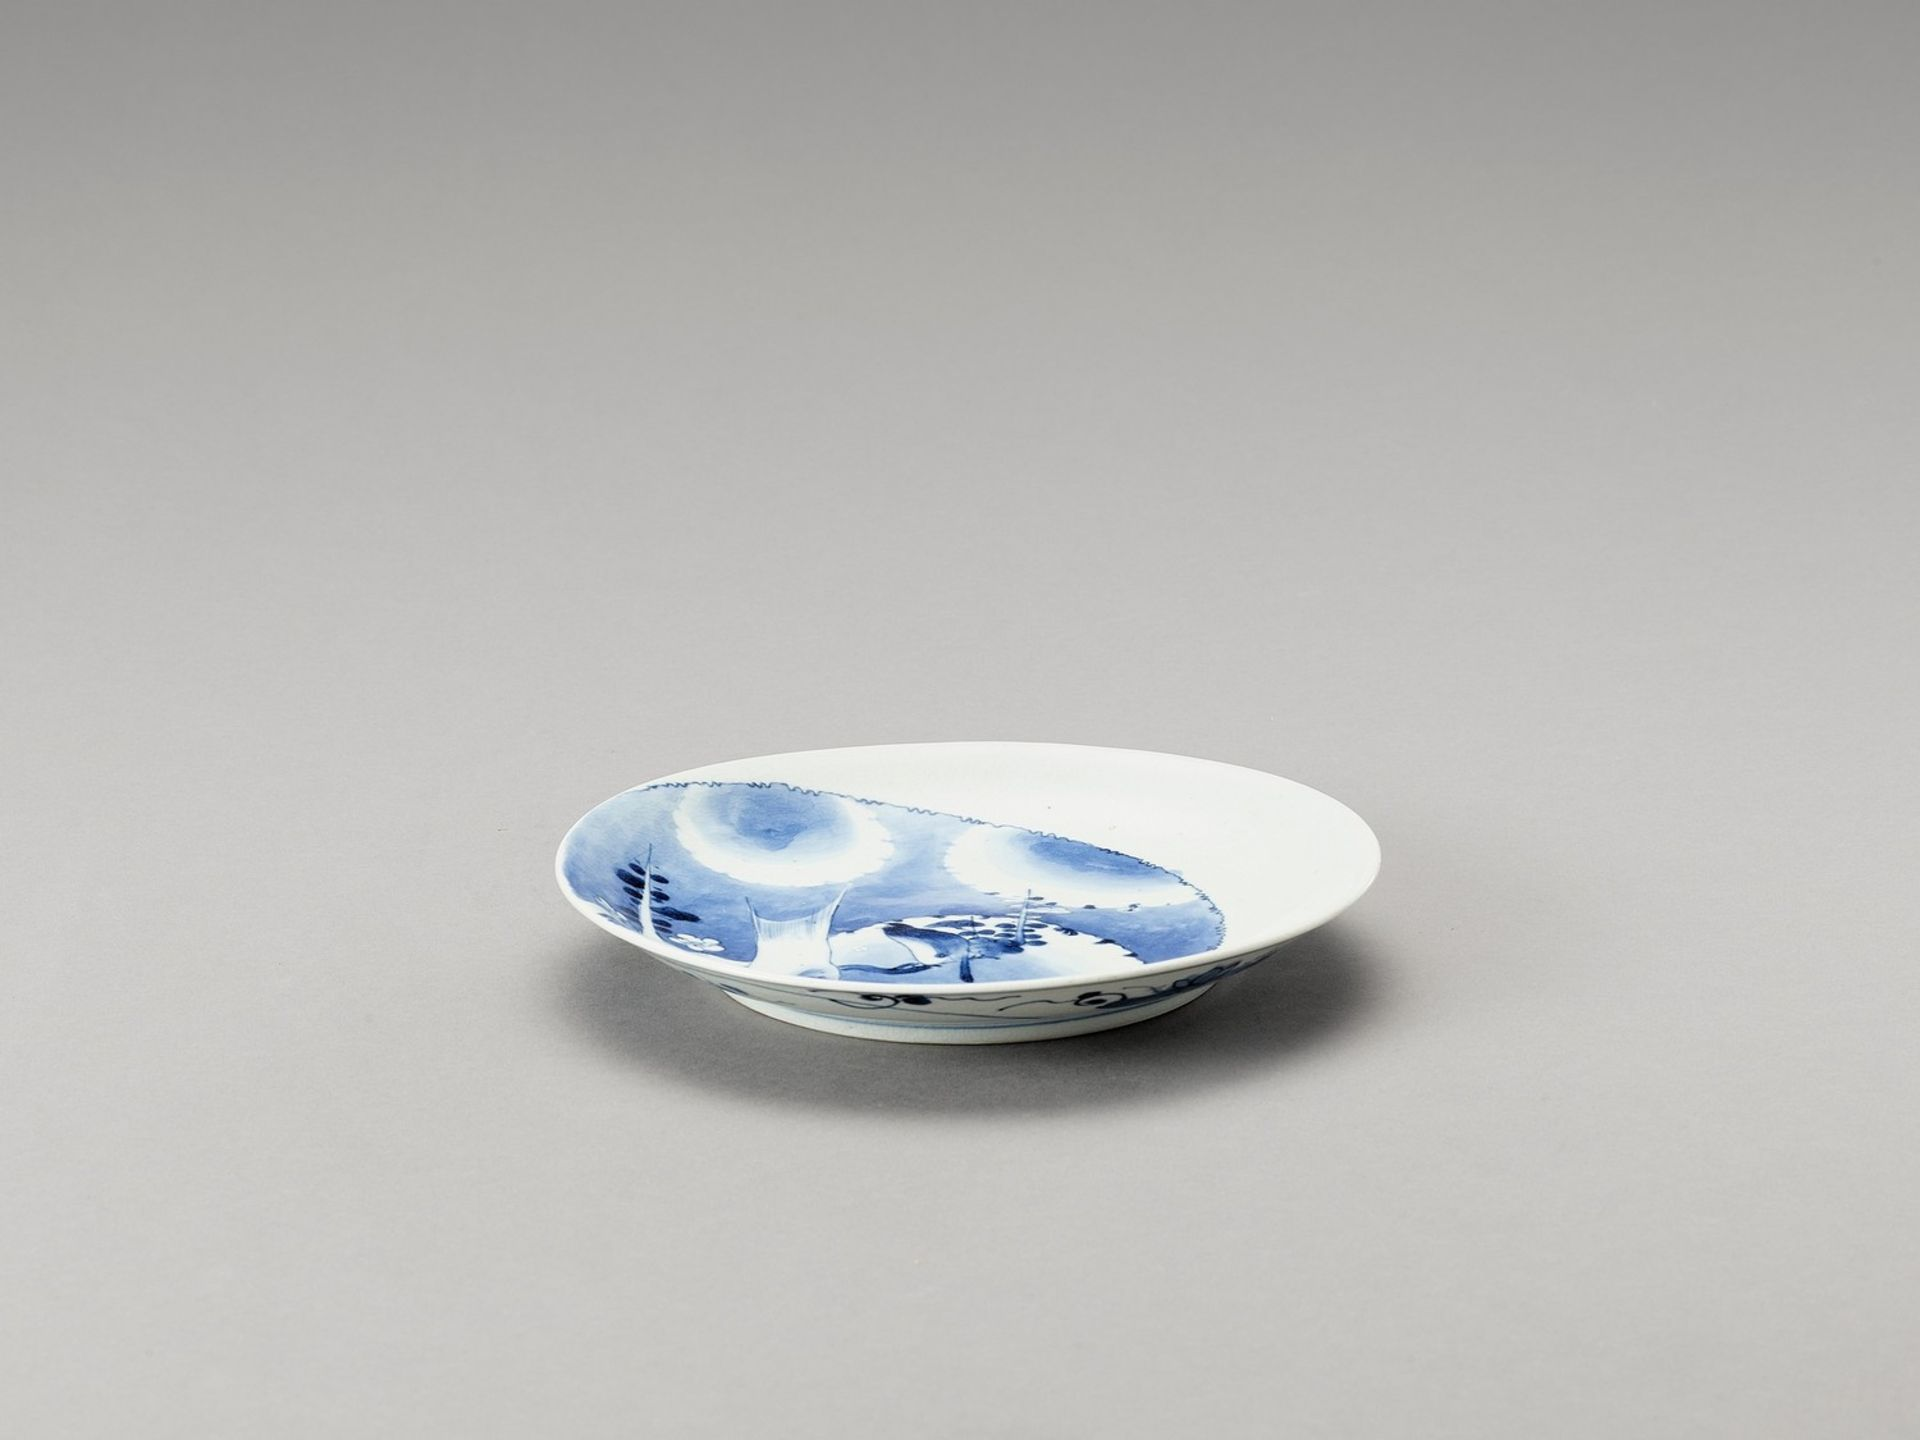 A BLUE AND WHITE PORCELAIN DISH - Image 2 of 4